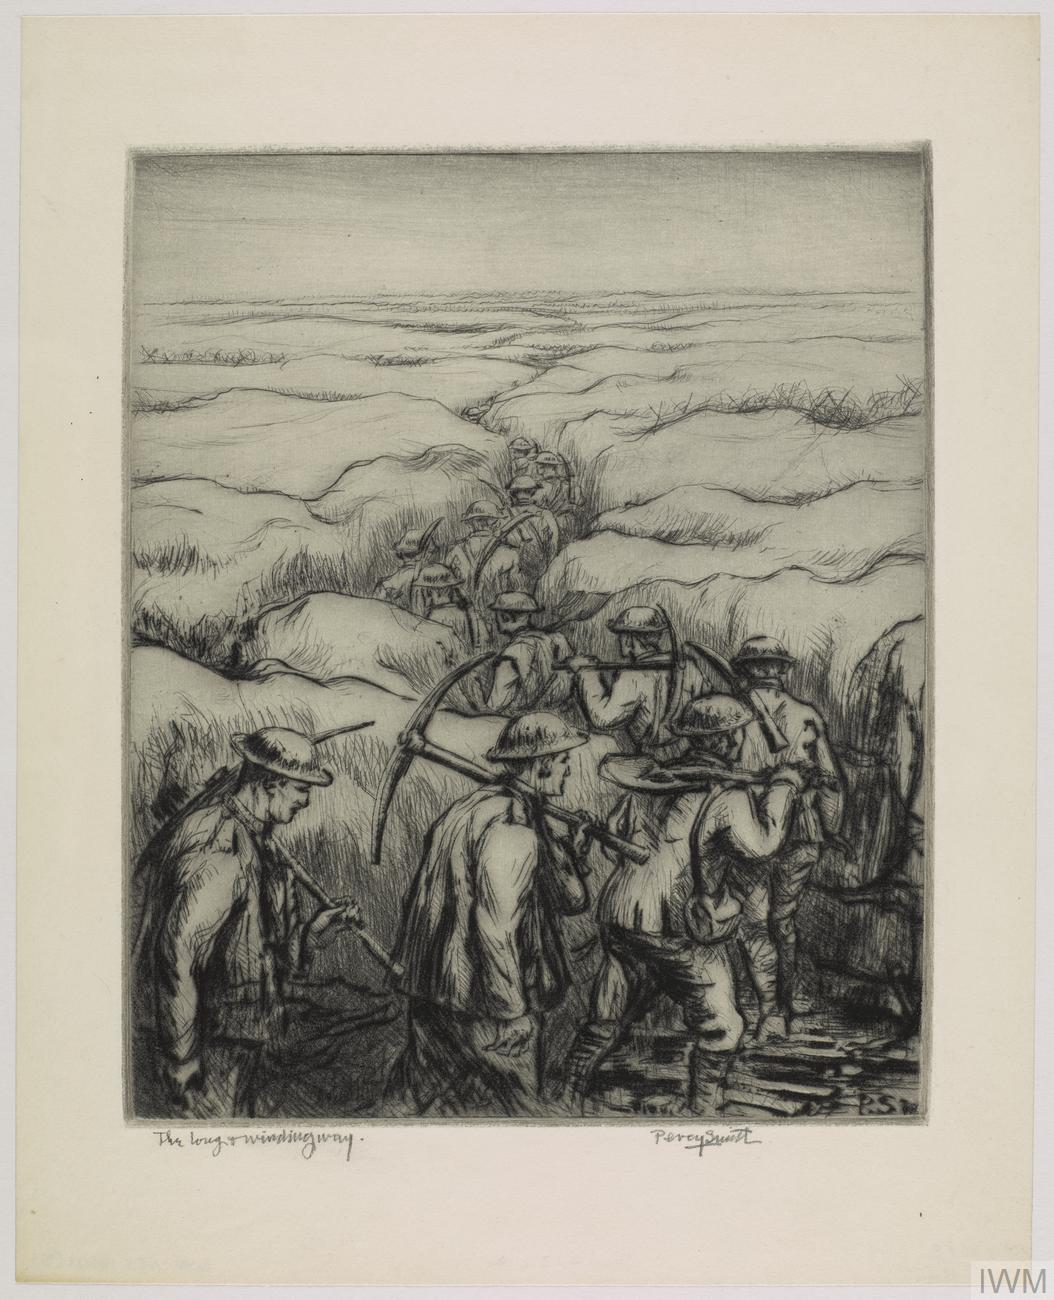 A group of Engineers walking through a meandering trench, each with a pickaxe on his shoulder.